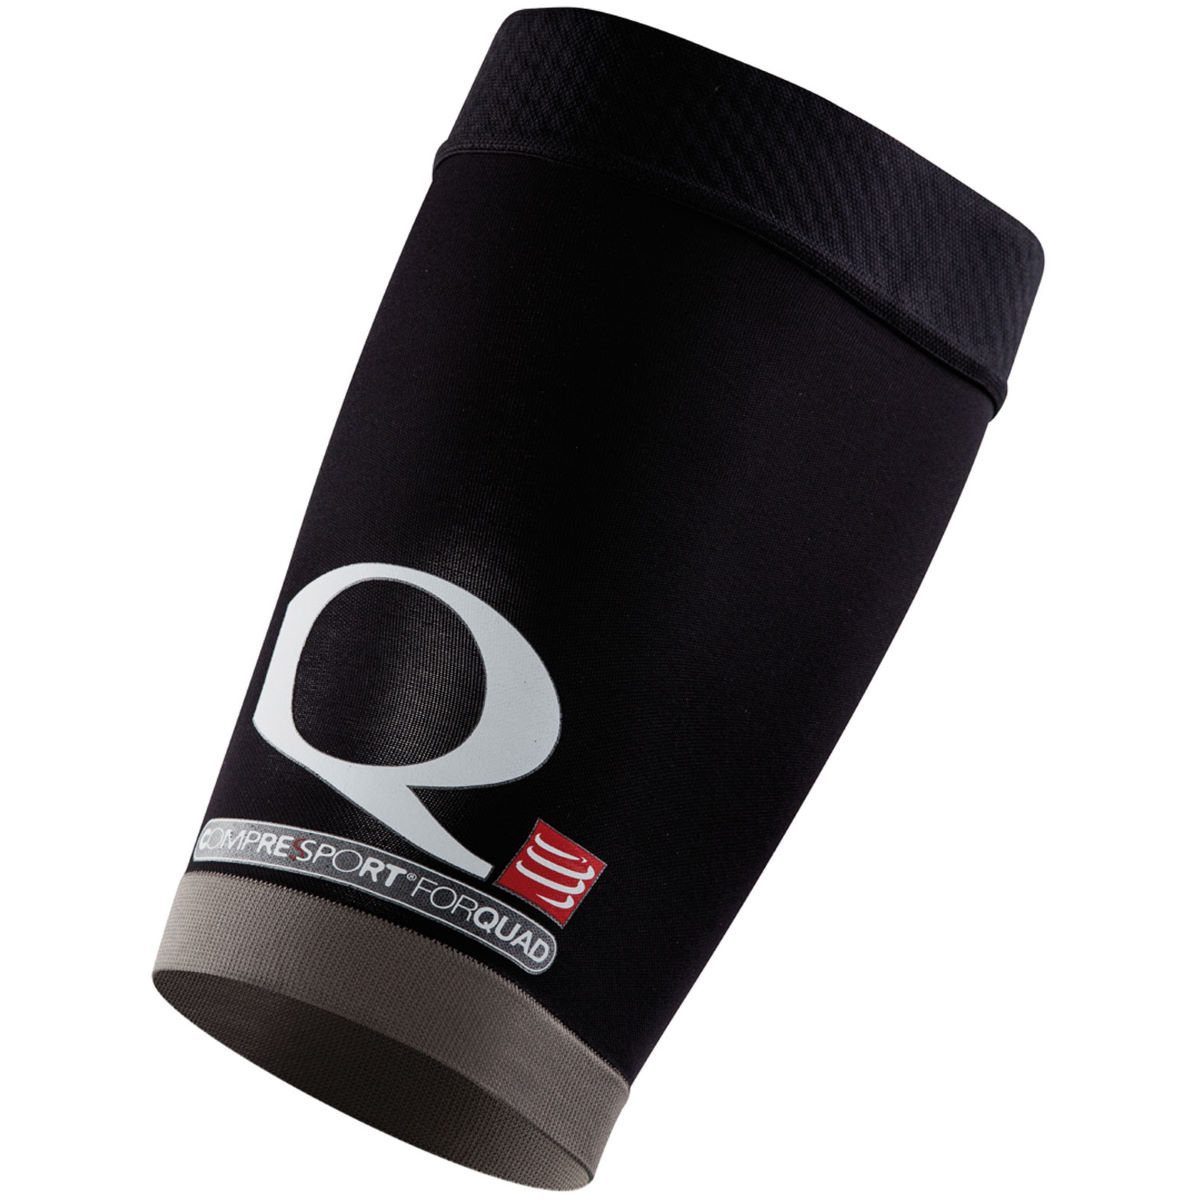 Compressport for Quad (Pair)